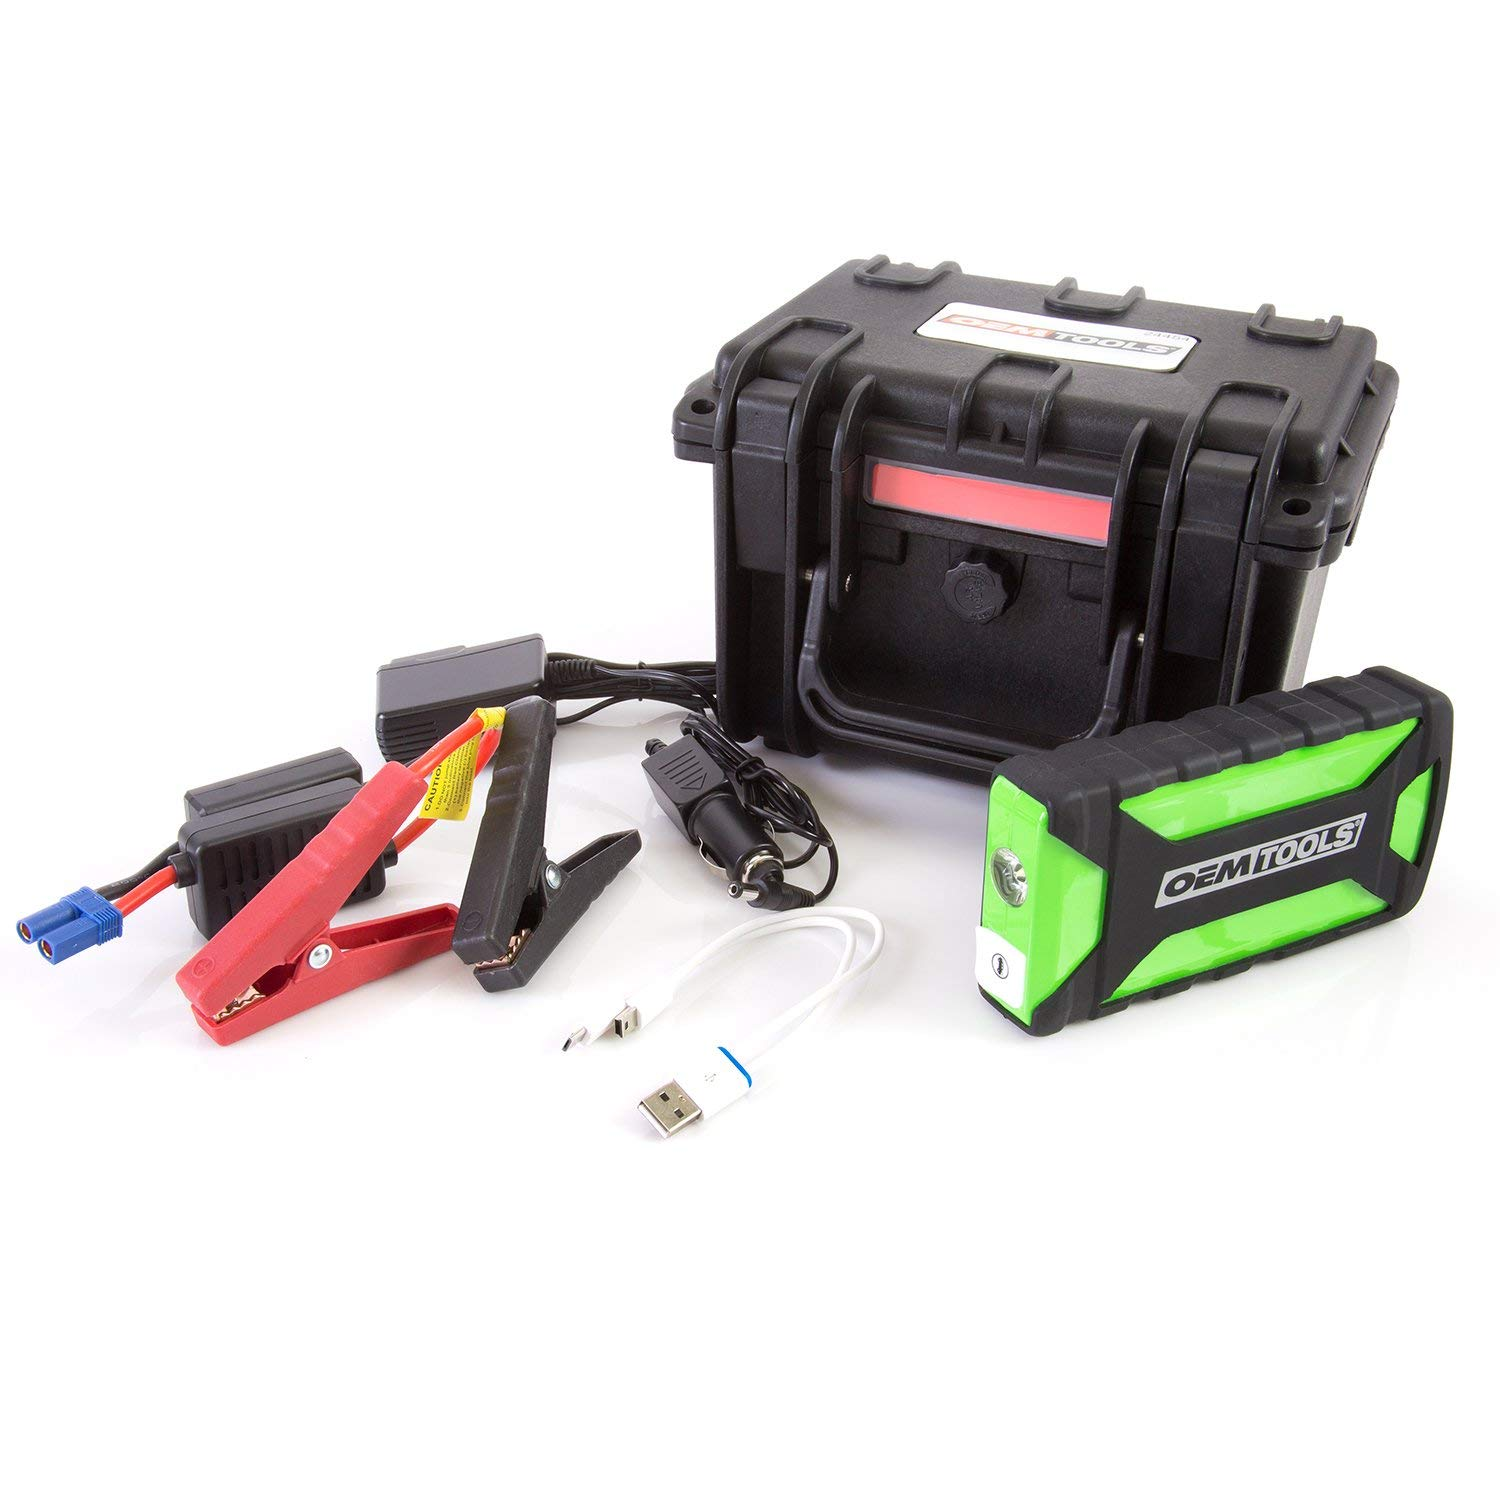 OEMTOOLS 24454 PPS-Maritime Multi-Use Portable Personal Power Source with Waterproof Storage Case